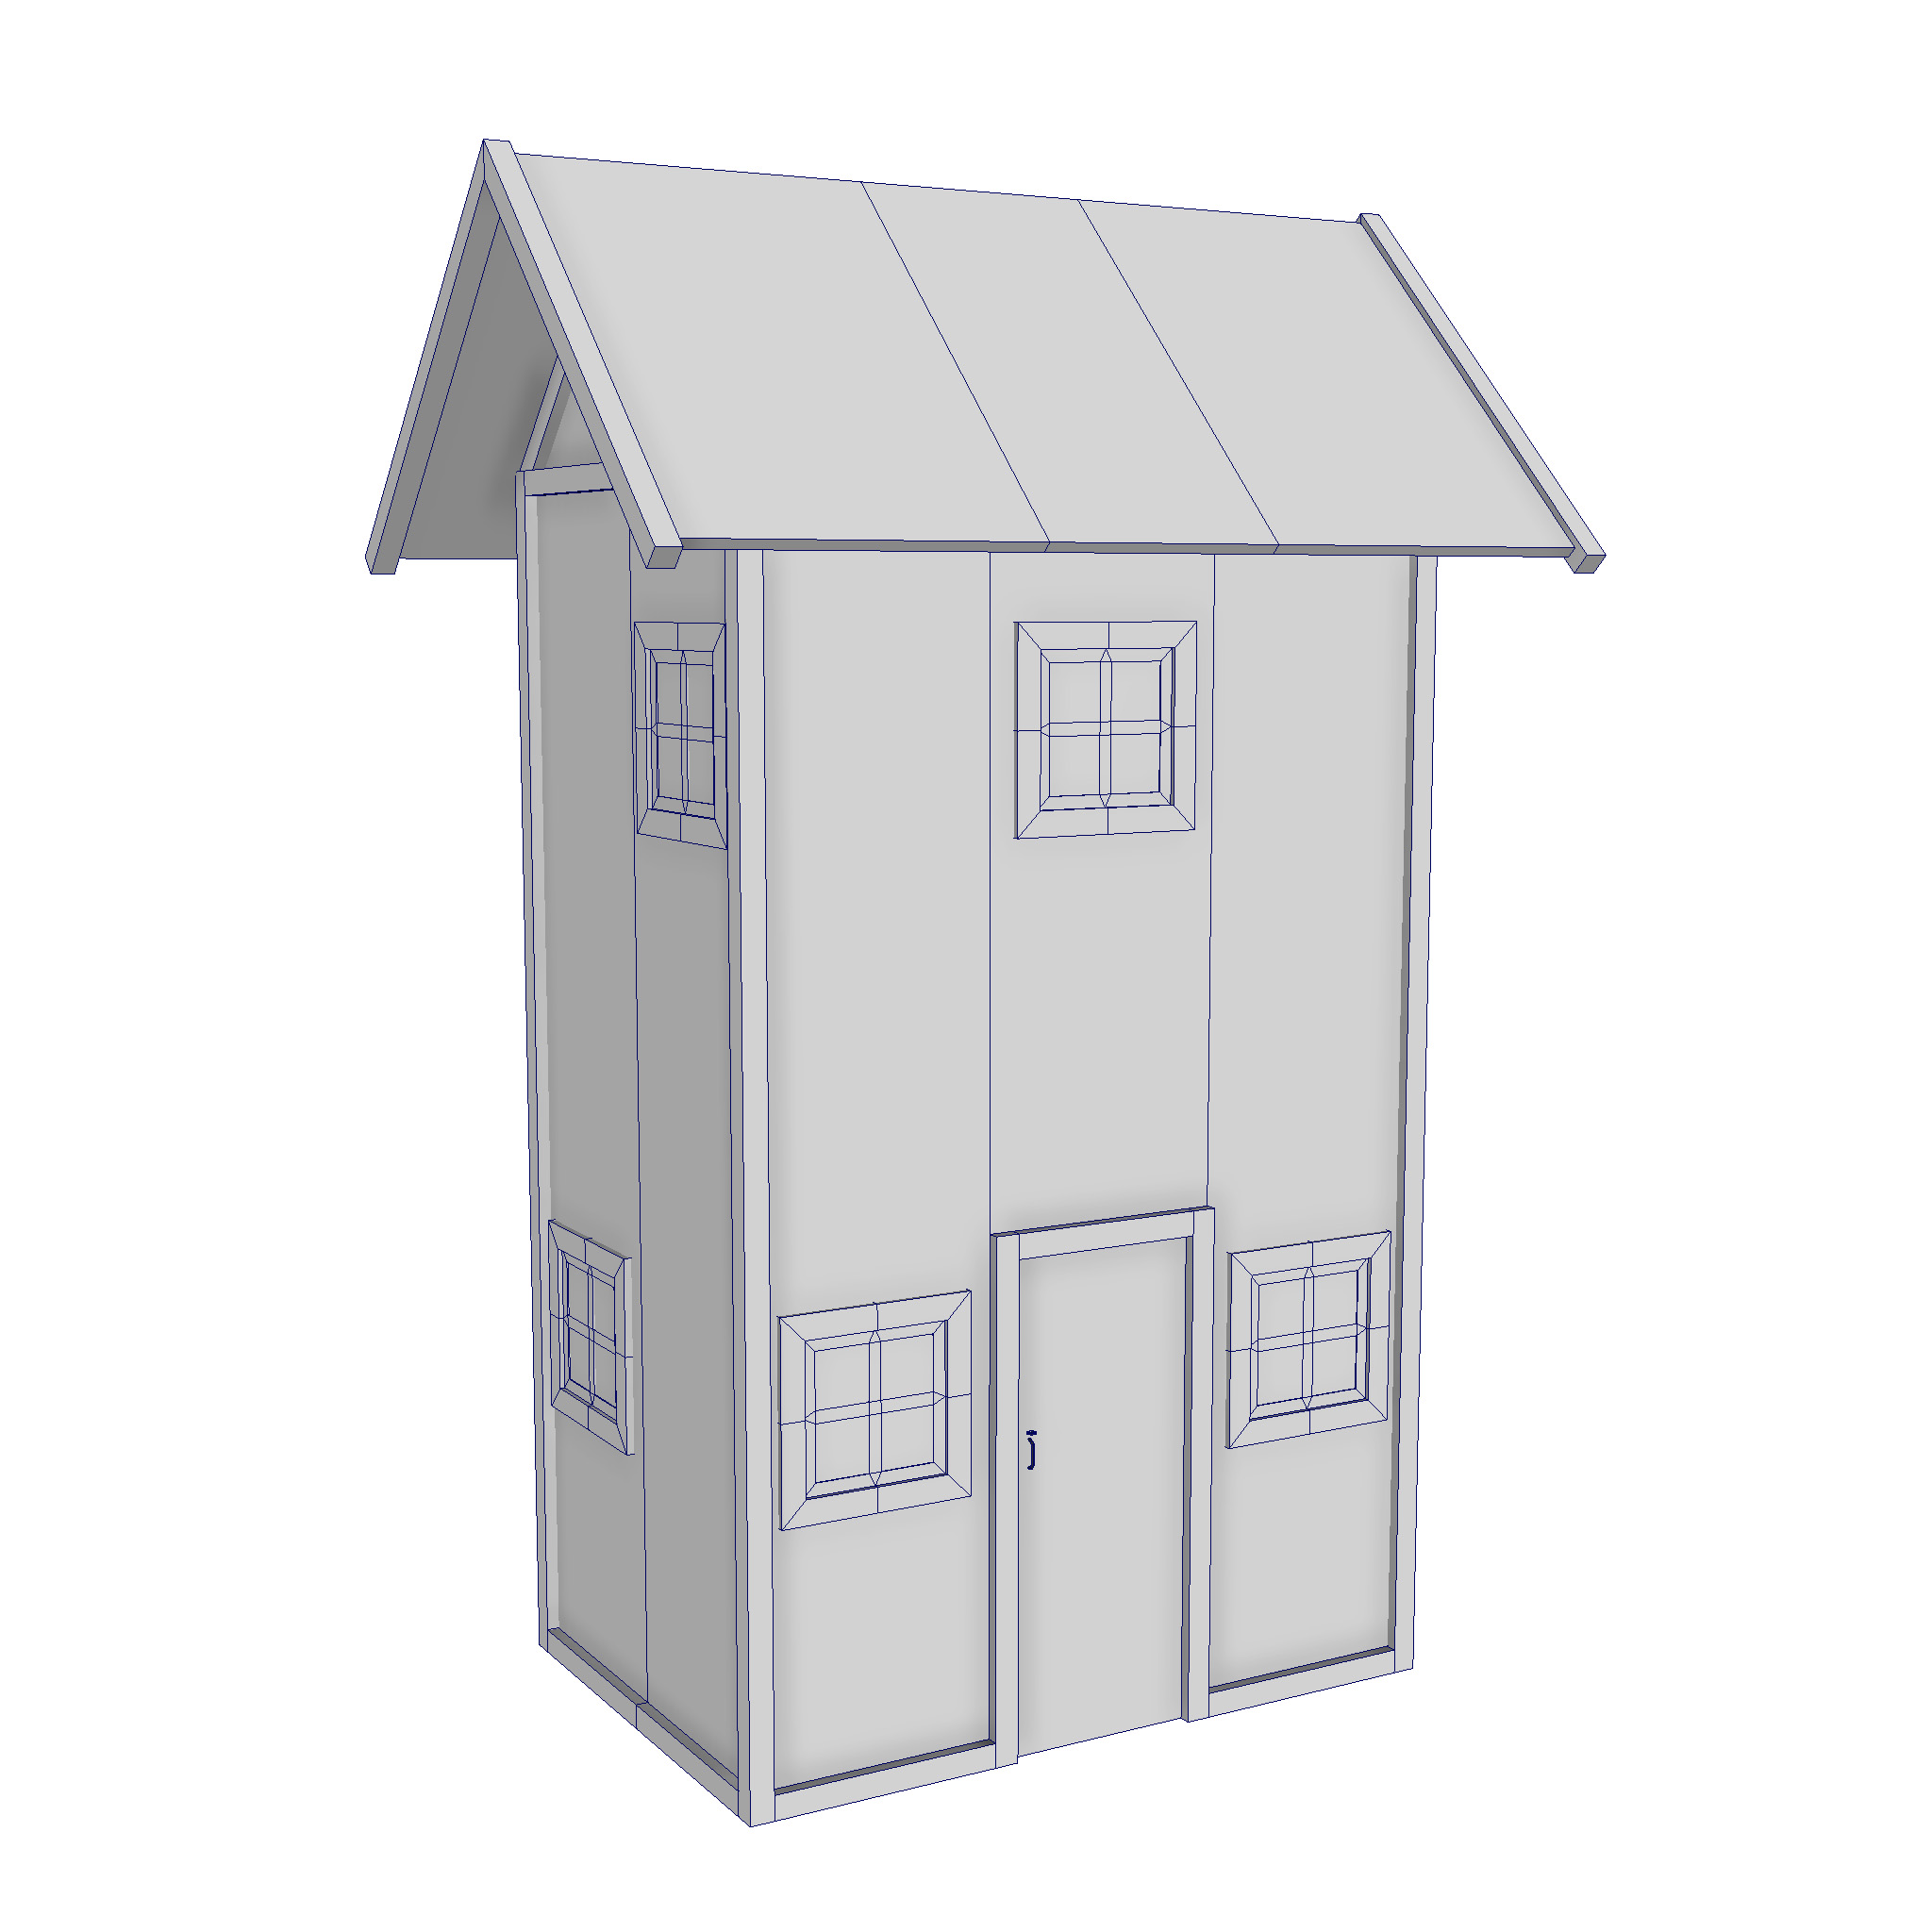 modular wood house set 3d model fbx ma mb 271440